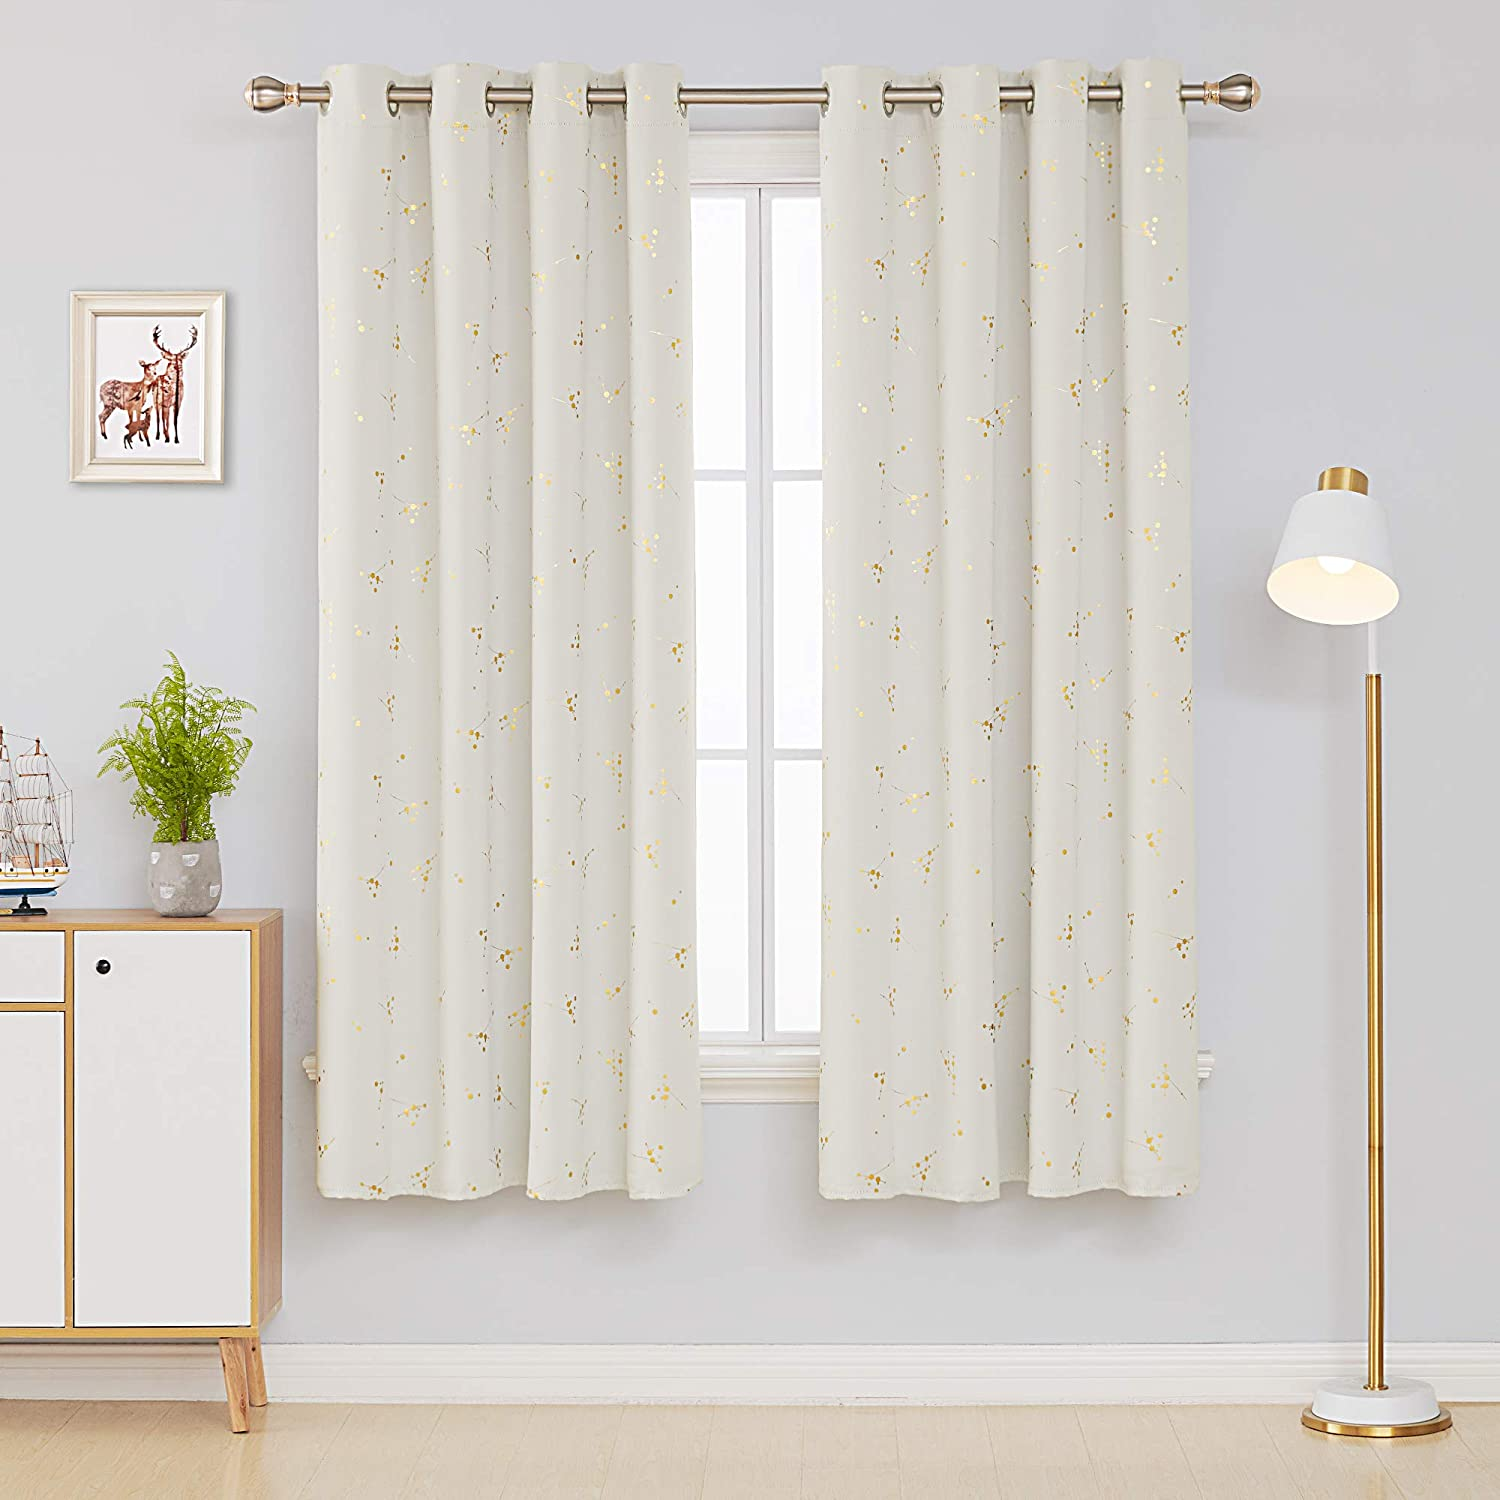 Deconovo Noise Reduction Curtains Eyelet Blackout Curtains Thermal Insulated Curtains Gold Constellation Printed Curtains for Boys Bedroom with Two Matching Tie Backs Beige W55 x L90 One Pair